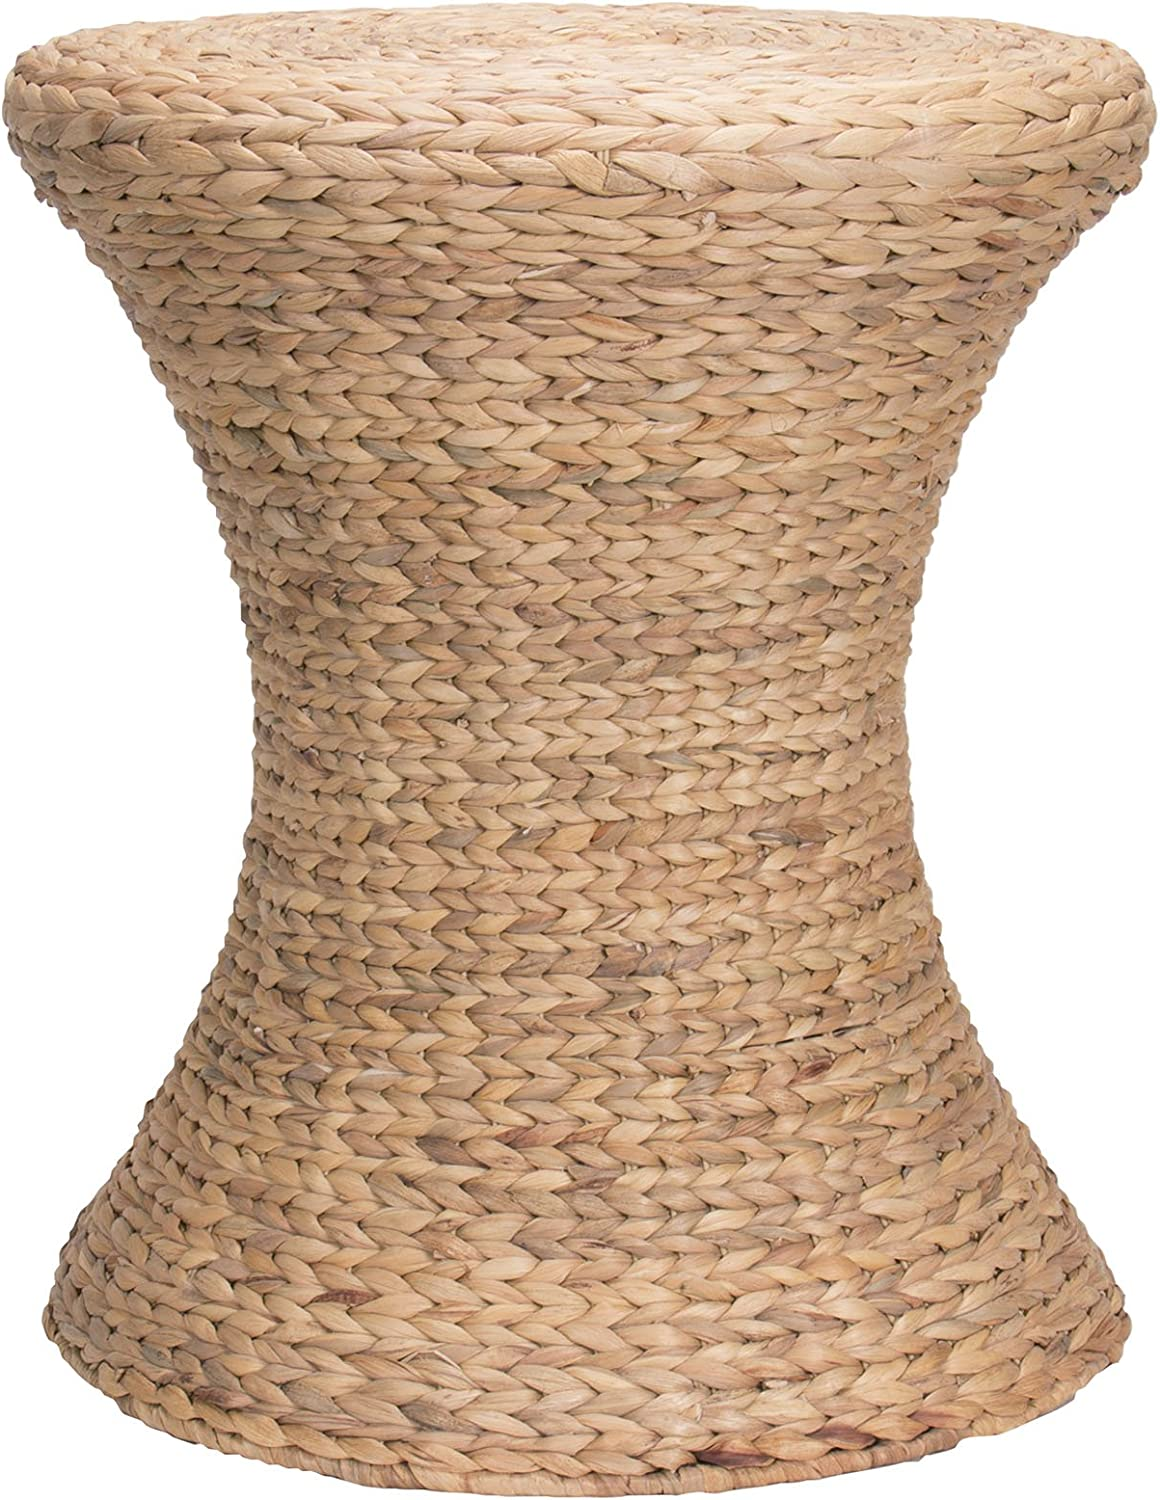 Hourglass Water Hyacinth Wicker Table